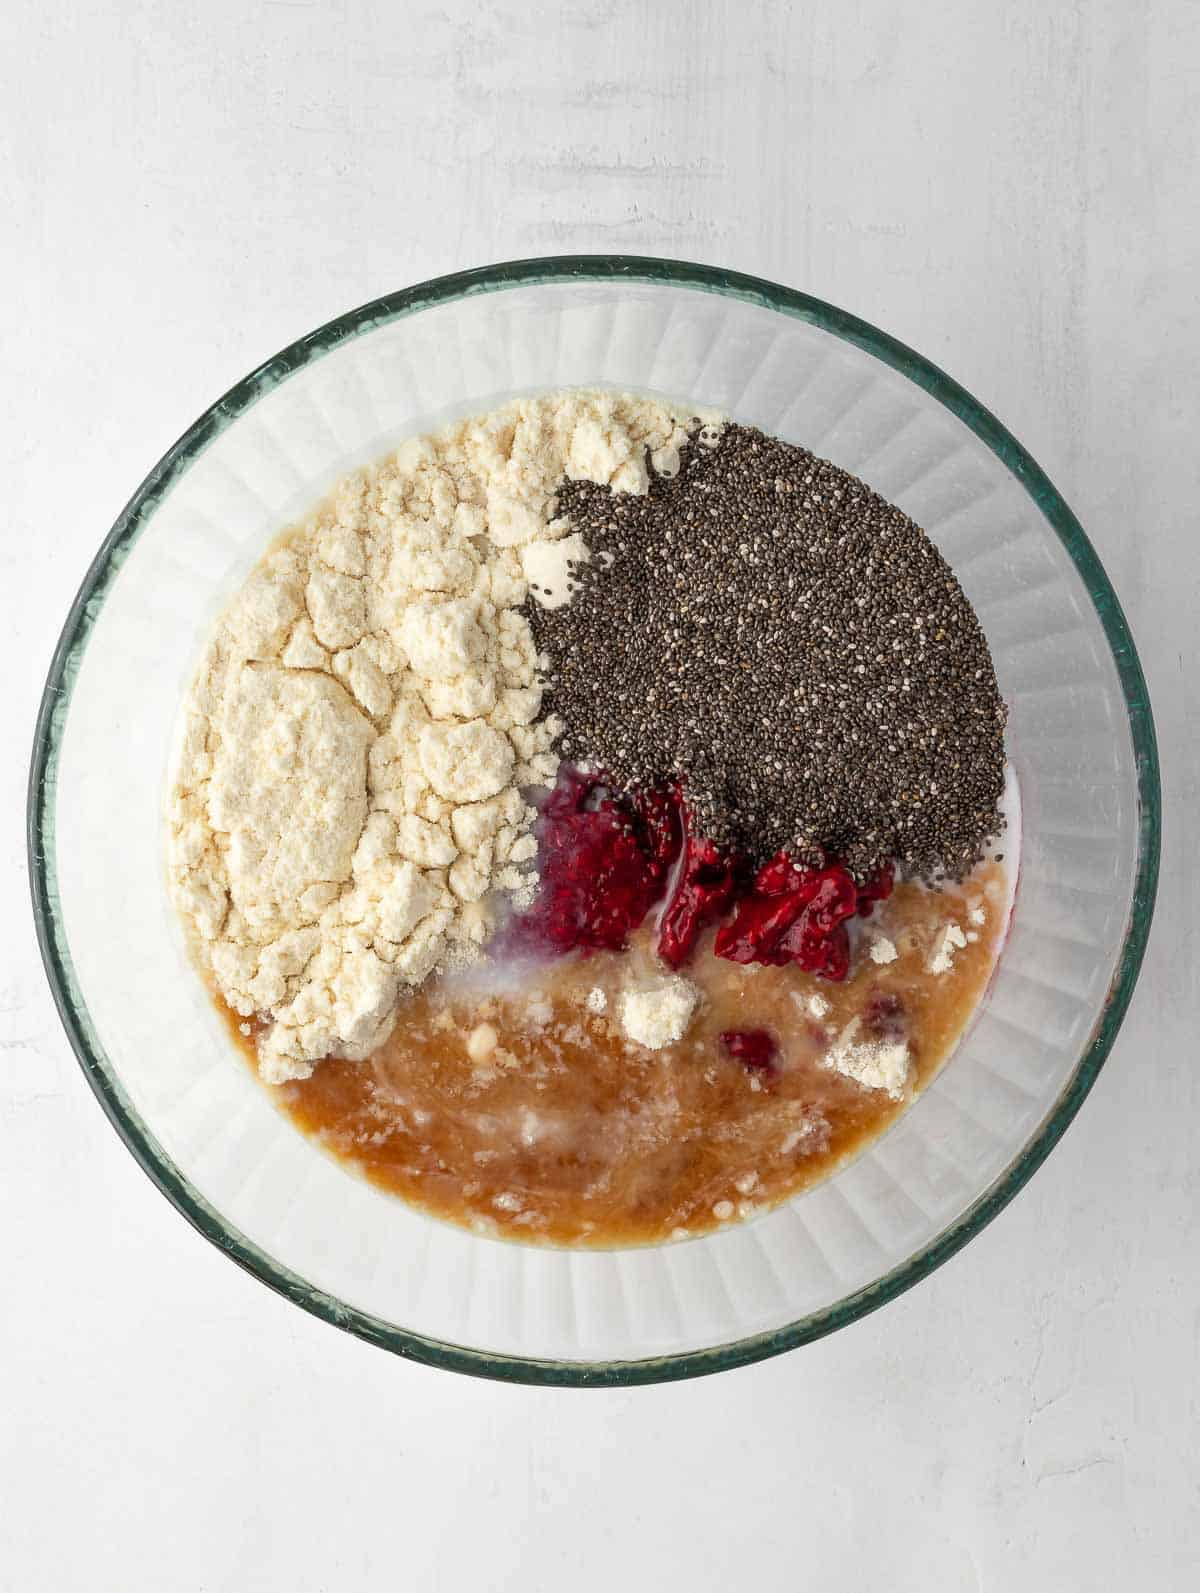 raspberry protein chia pudding ingredients placed in a bowl